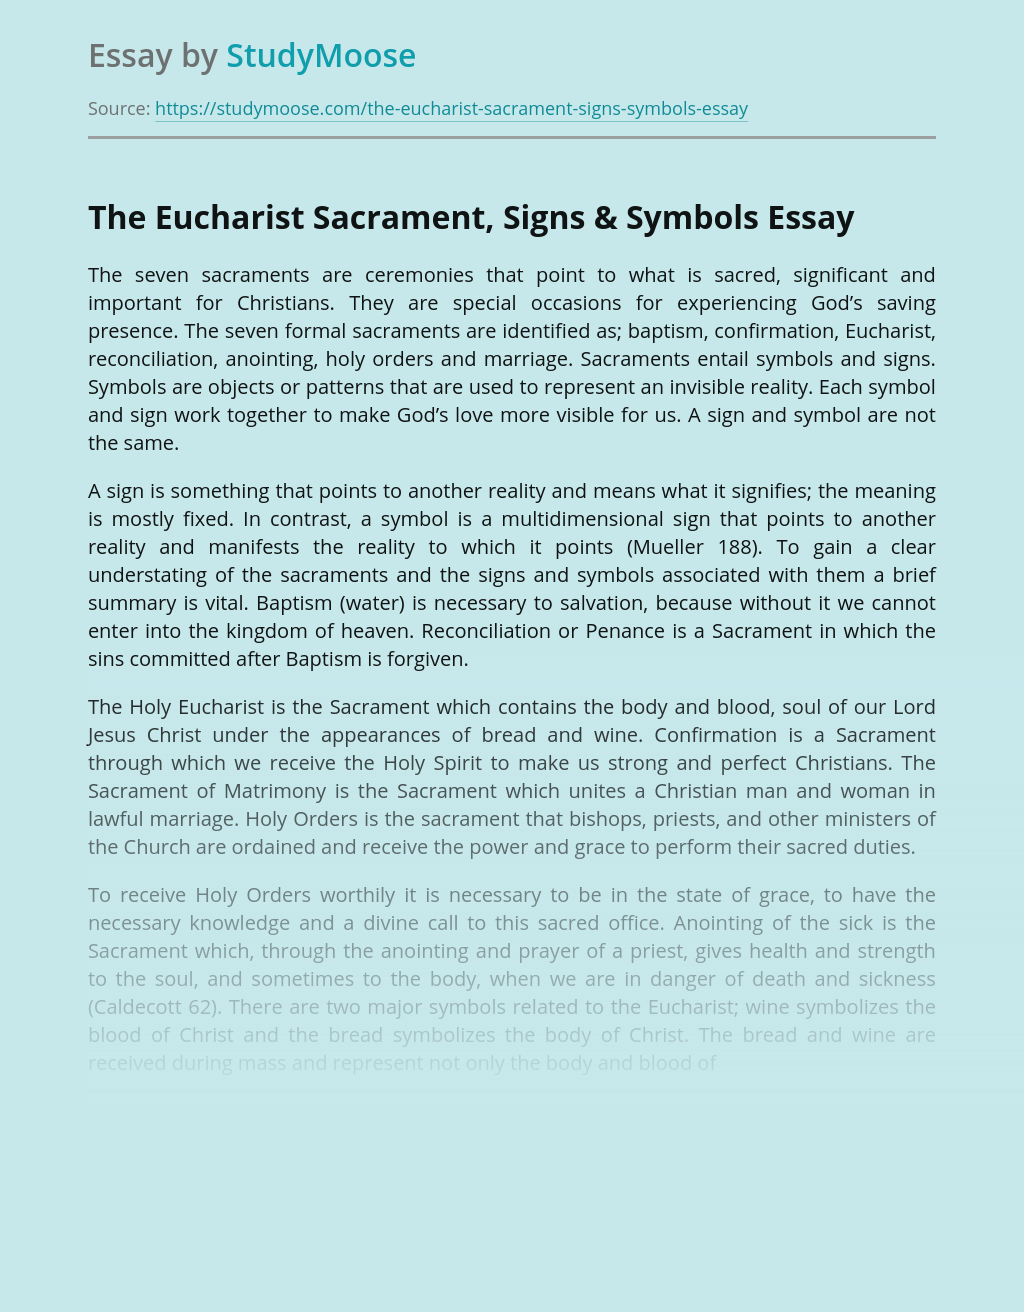 The Eucharist Sacrament, Signs and Symbols in Christianity